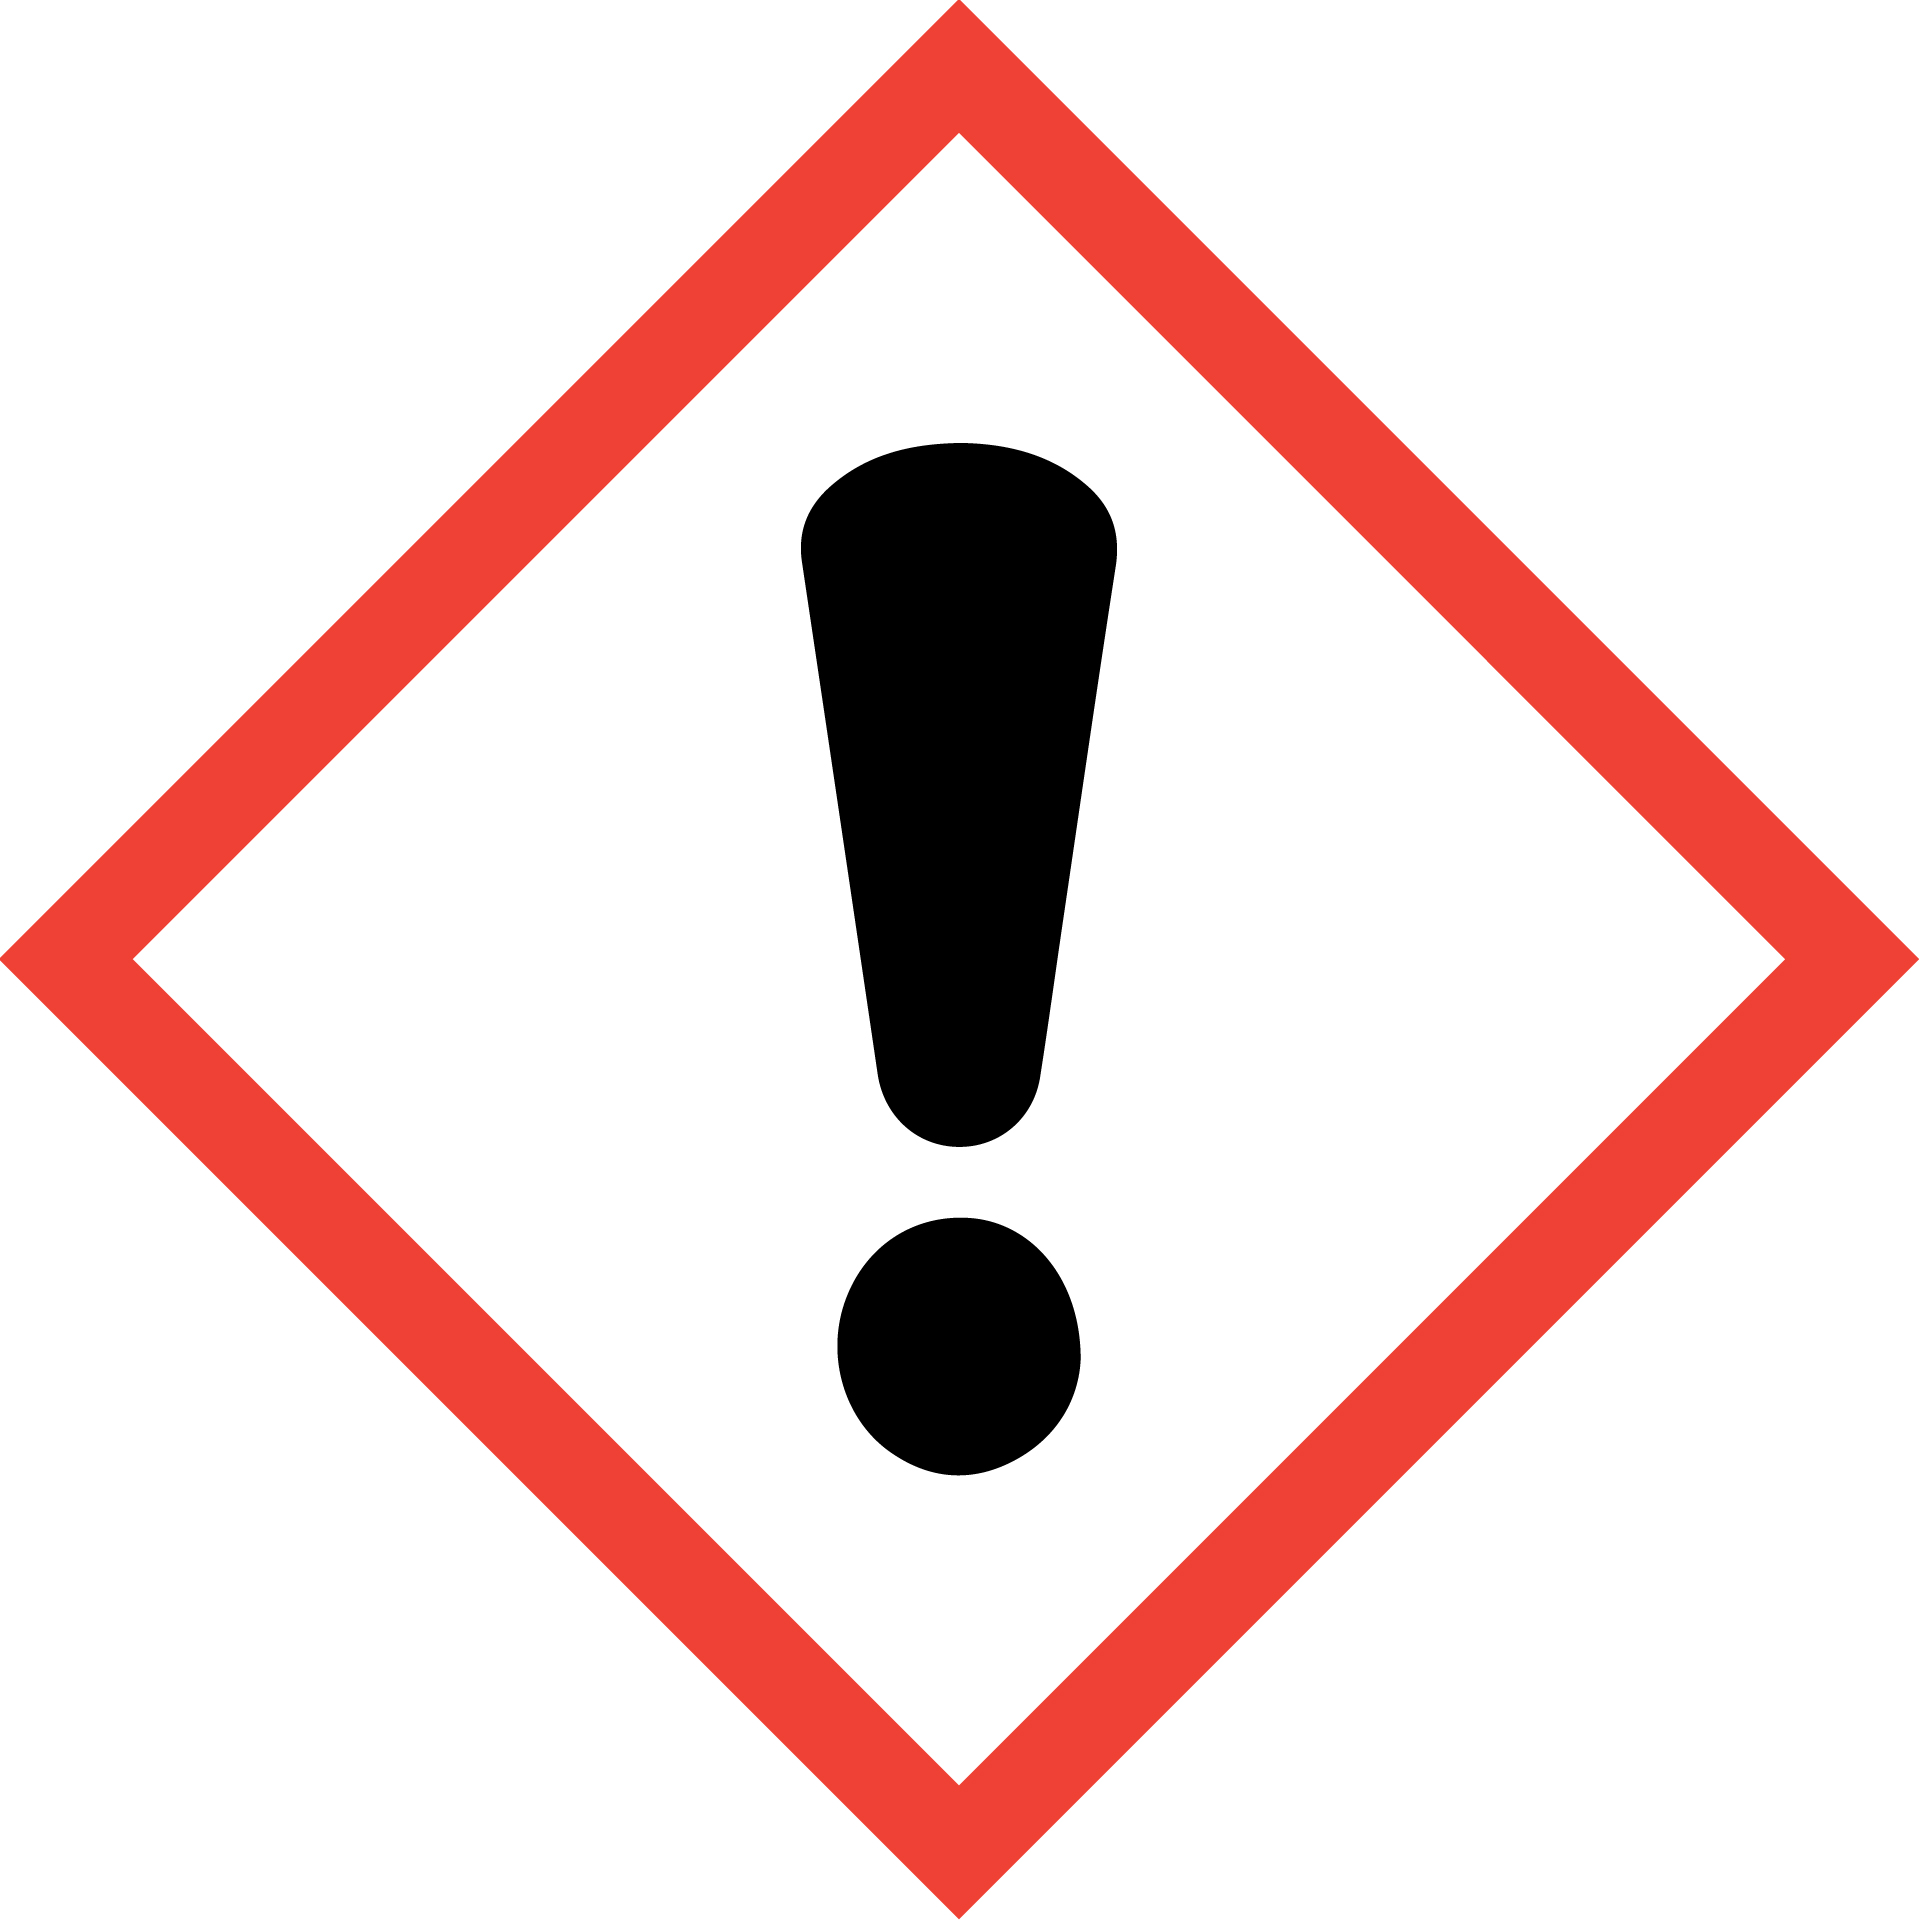 Danger clipart chemical safety Home Chemical irritation eye and